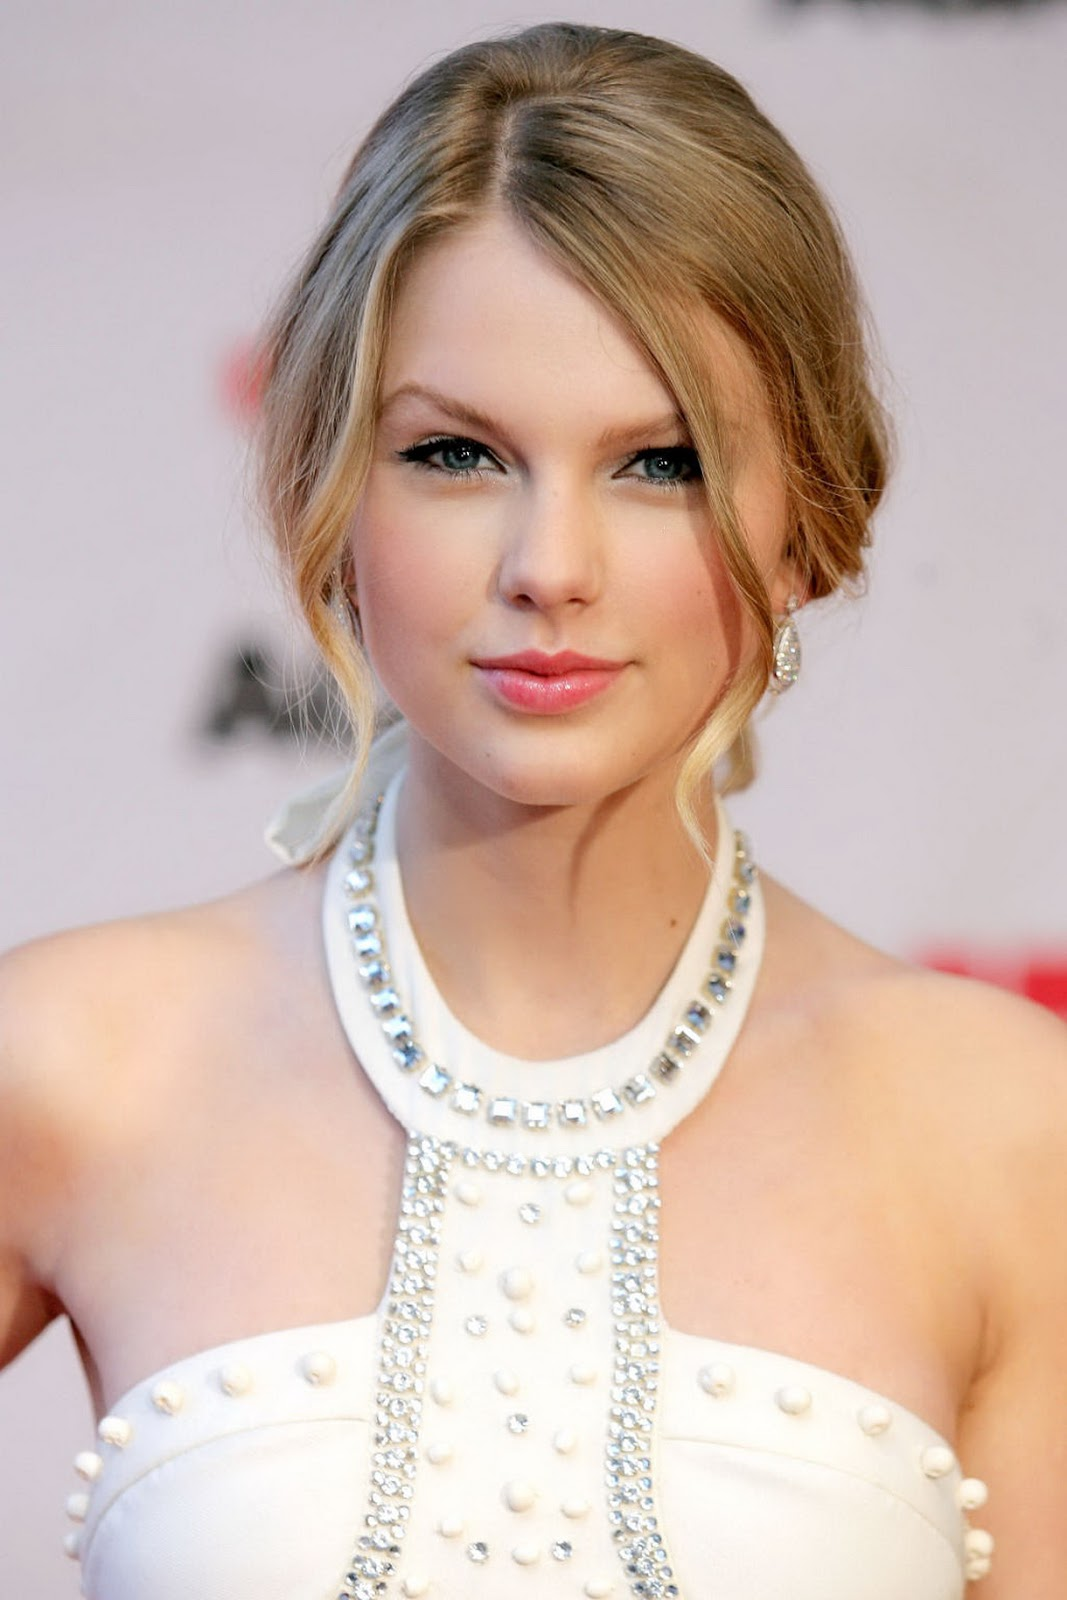 best style hairpunky: taylor swift beauty girls cute curly hairstyles